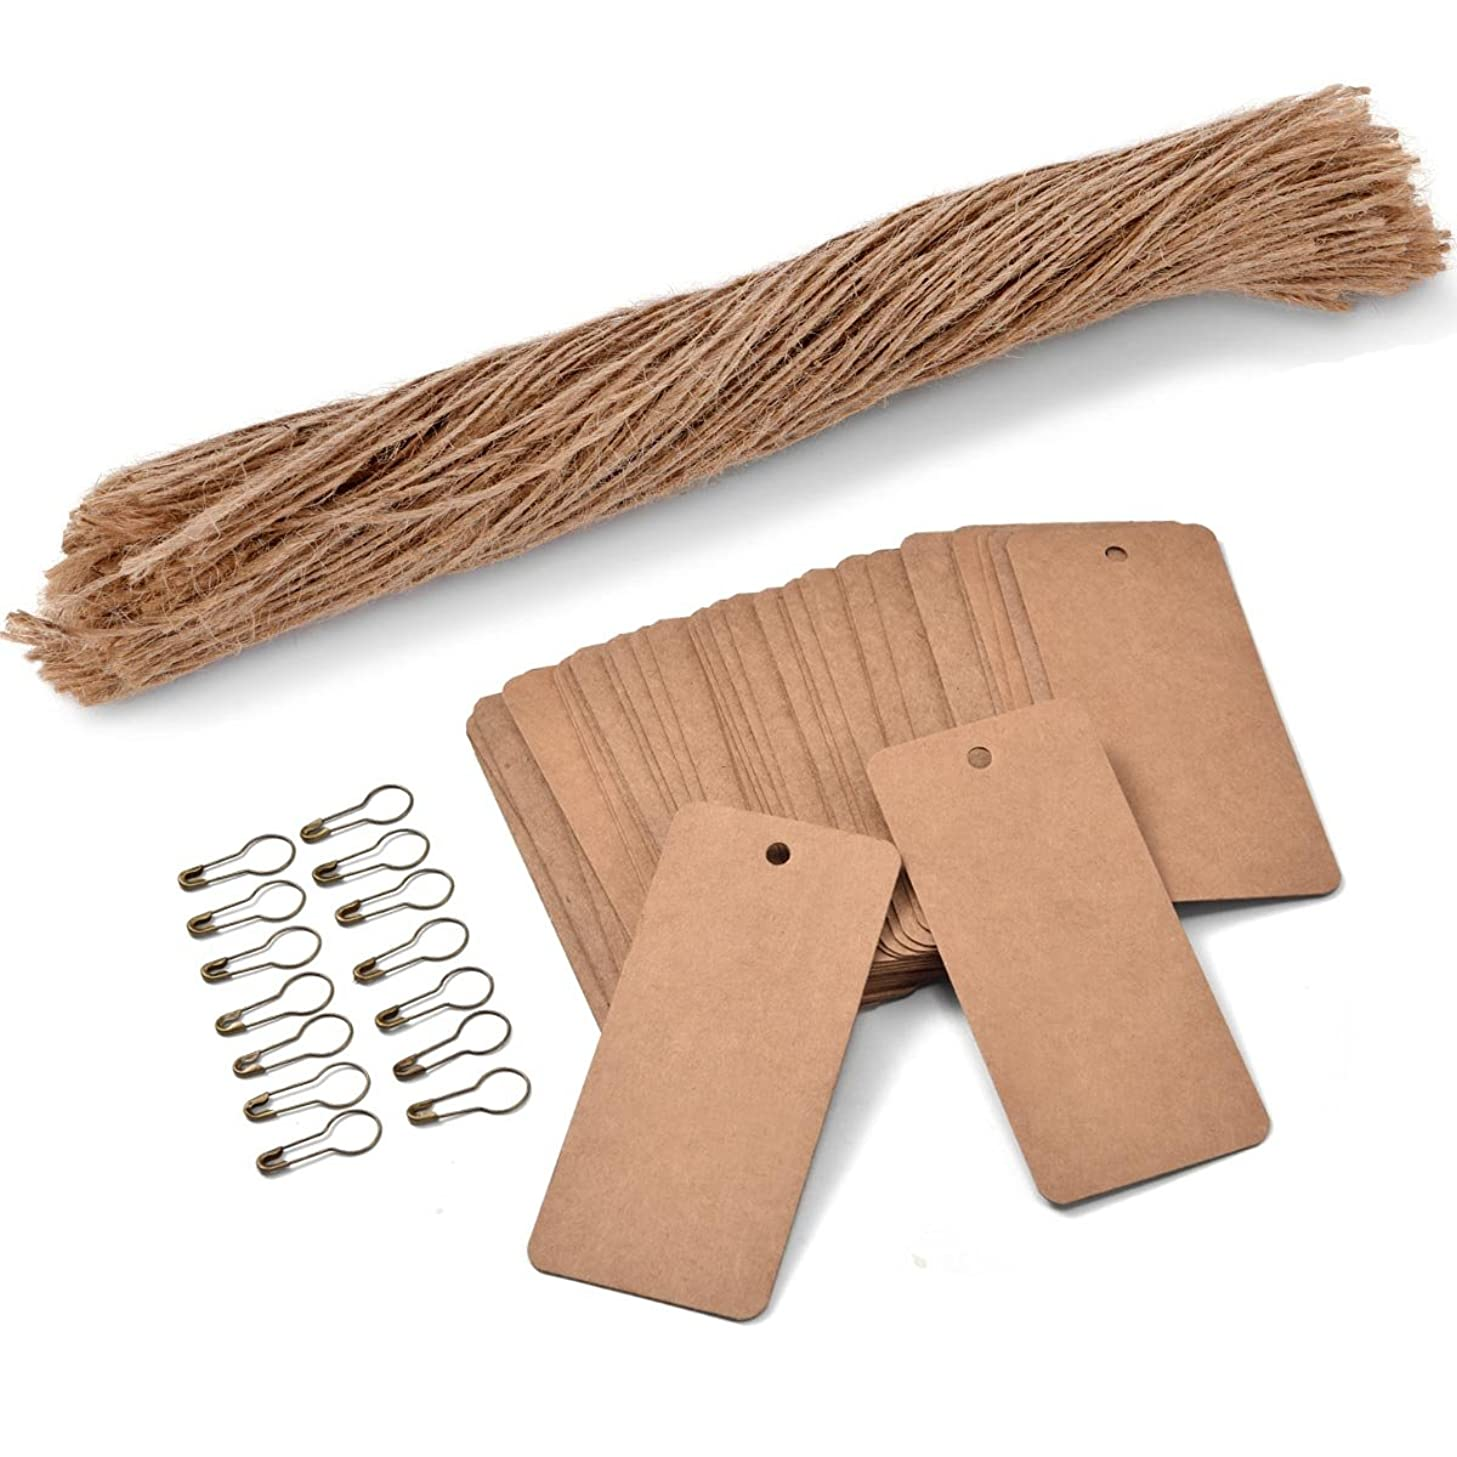 200 PCS Price Tags with Pre Cut Jute String and Safety Pins,LOOMY Printable Blank Brown Paper Tags for Sales Retail and Display